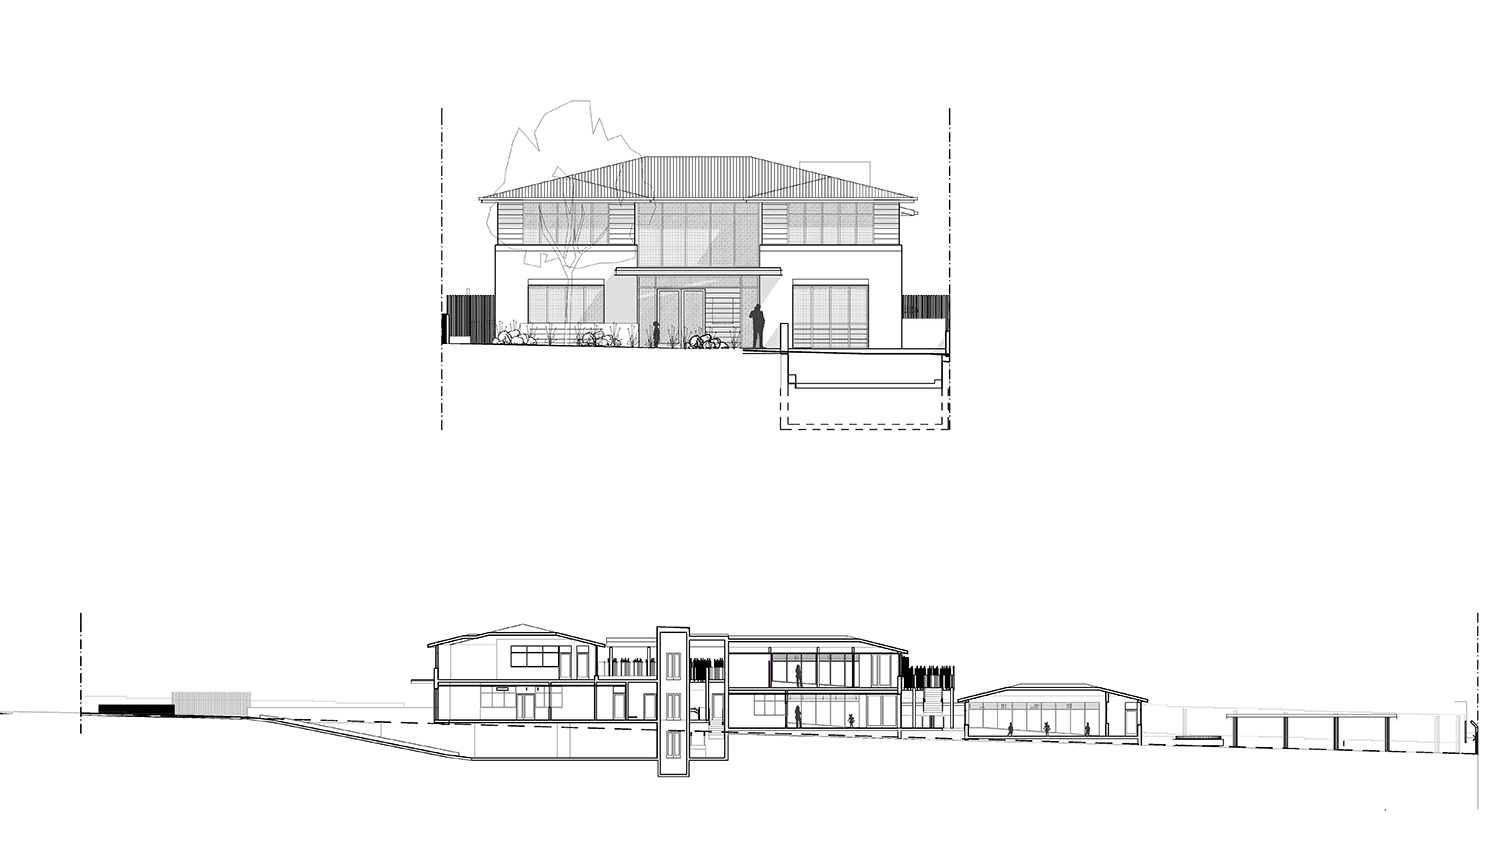 Epping Childcare Centre Architectural Elevation and Section – Gardner Wetherill GW Plan 03